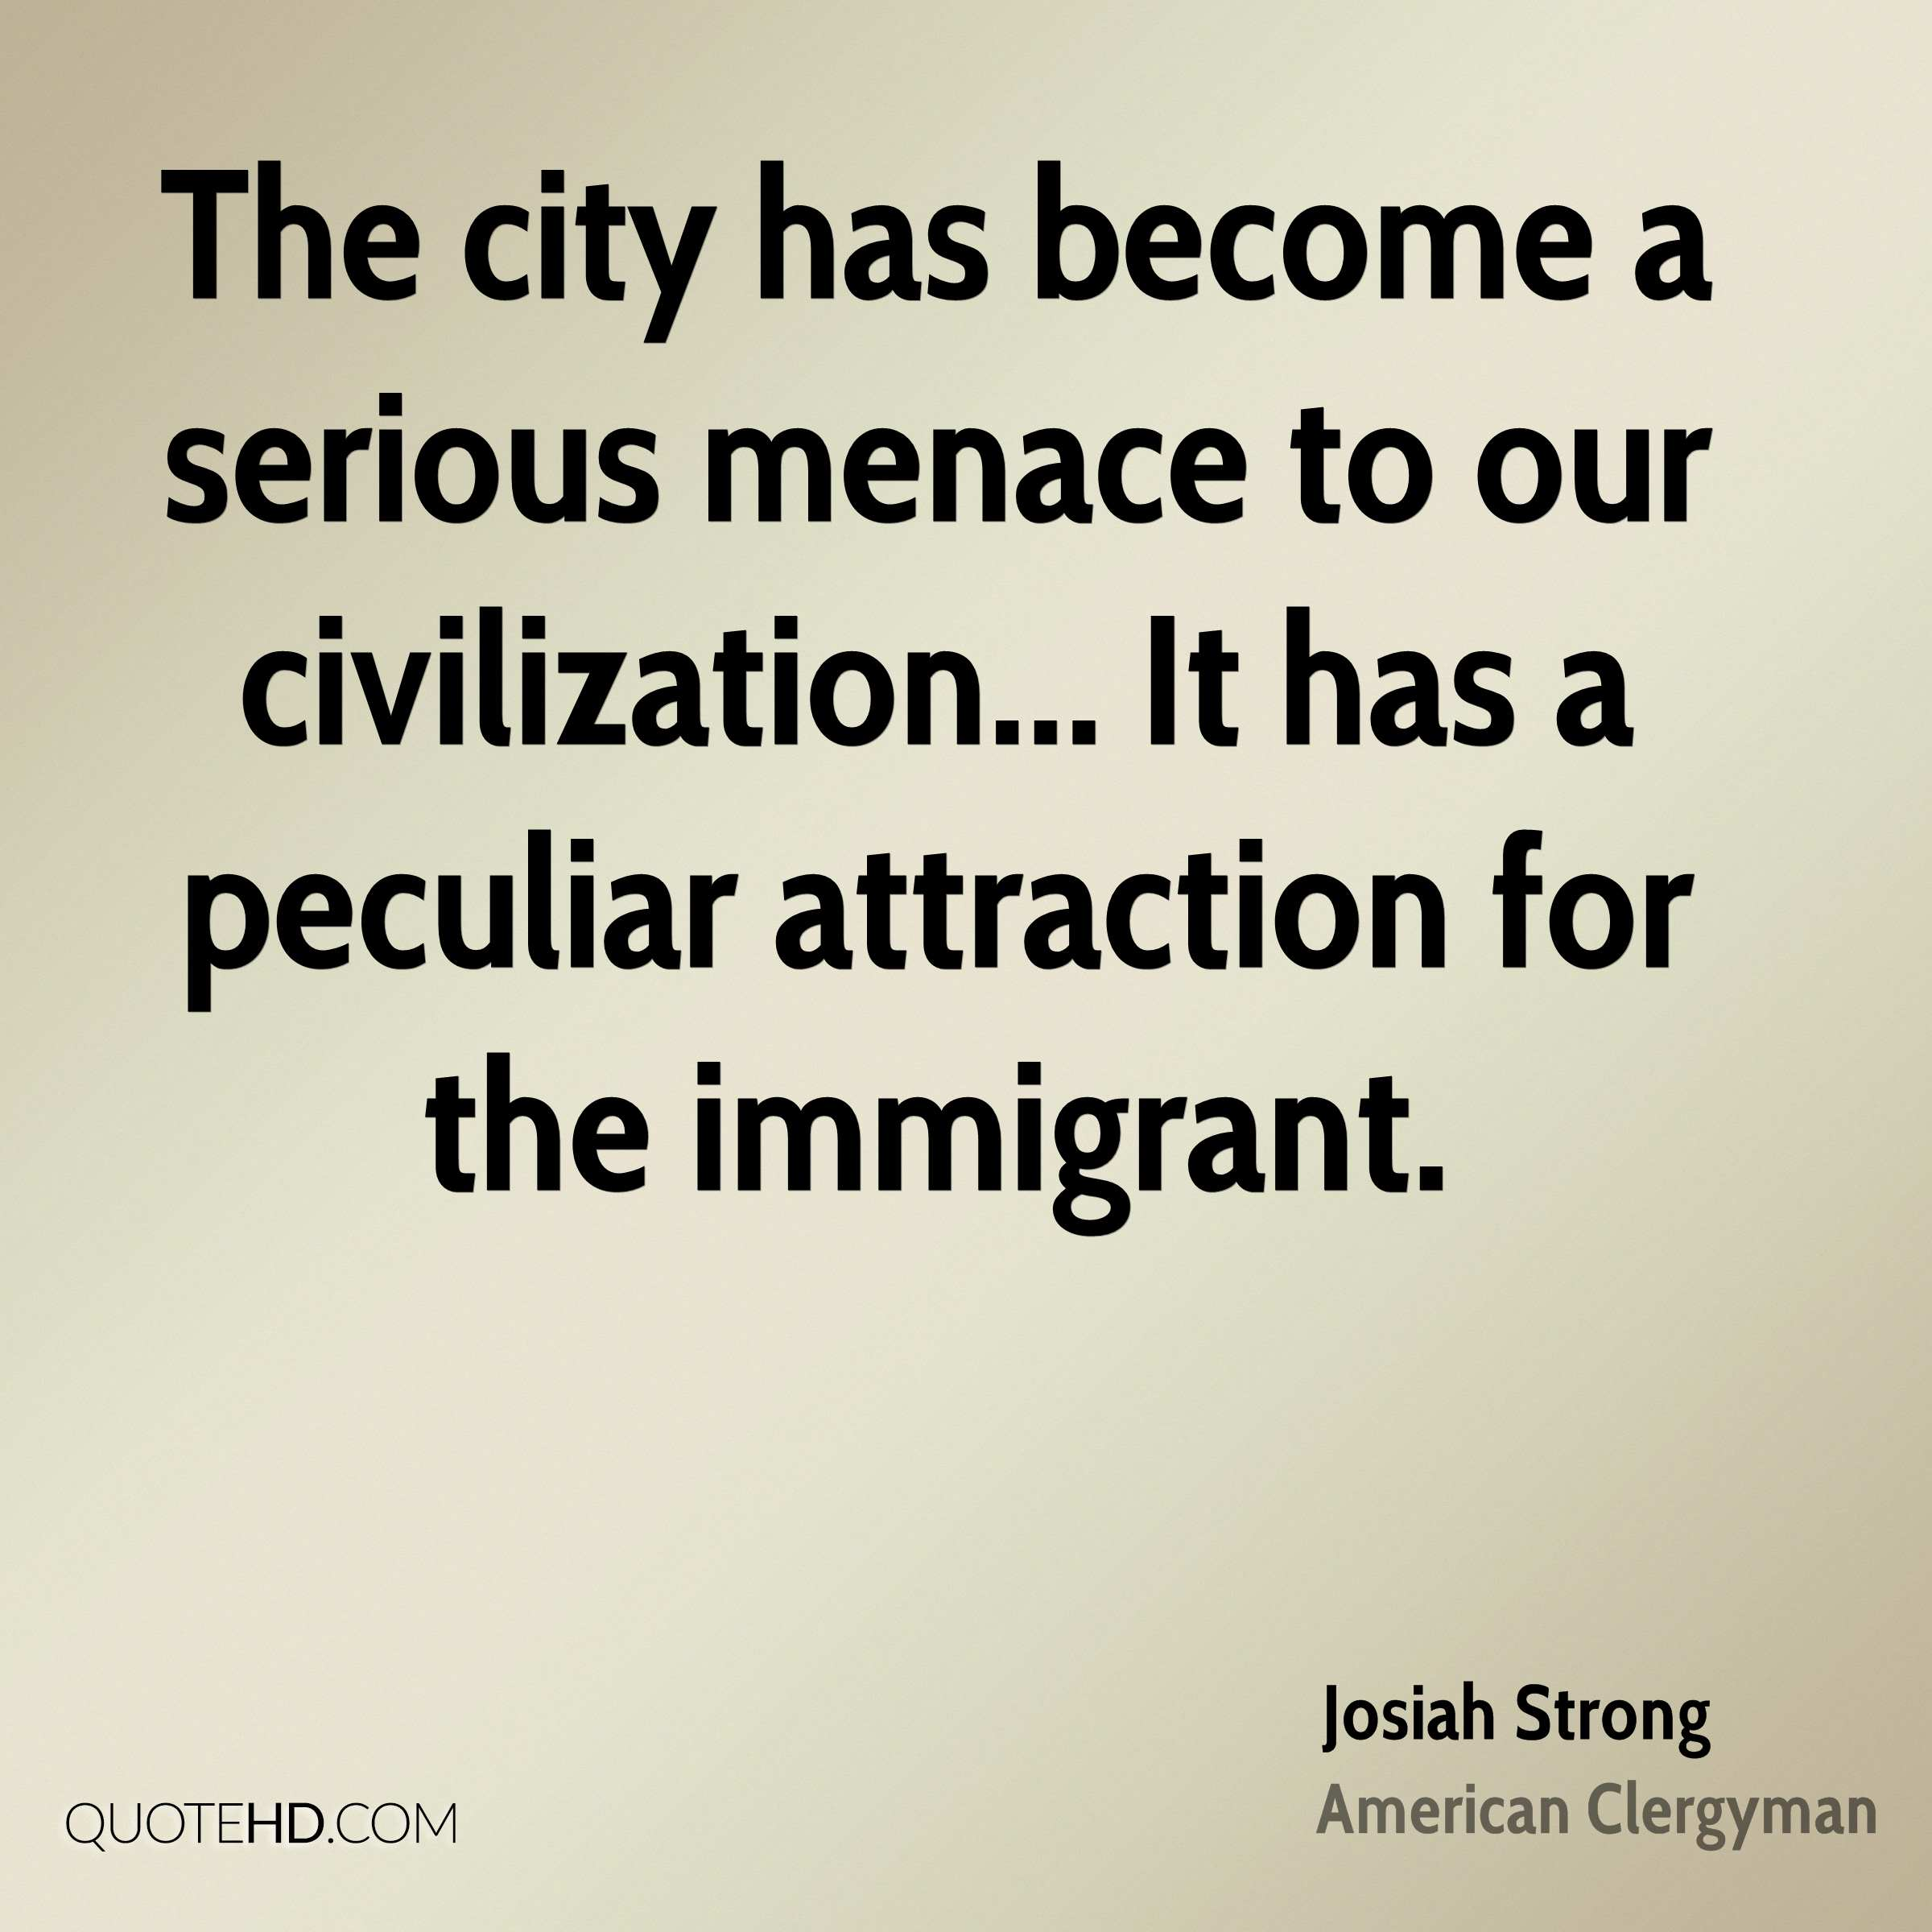 The city has become a serious menace to our civilization... It has a peculiar attraction for the immigrant.